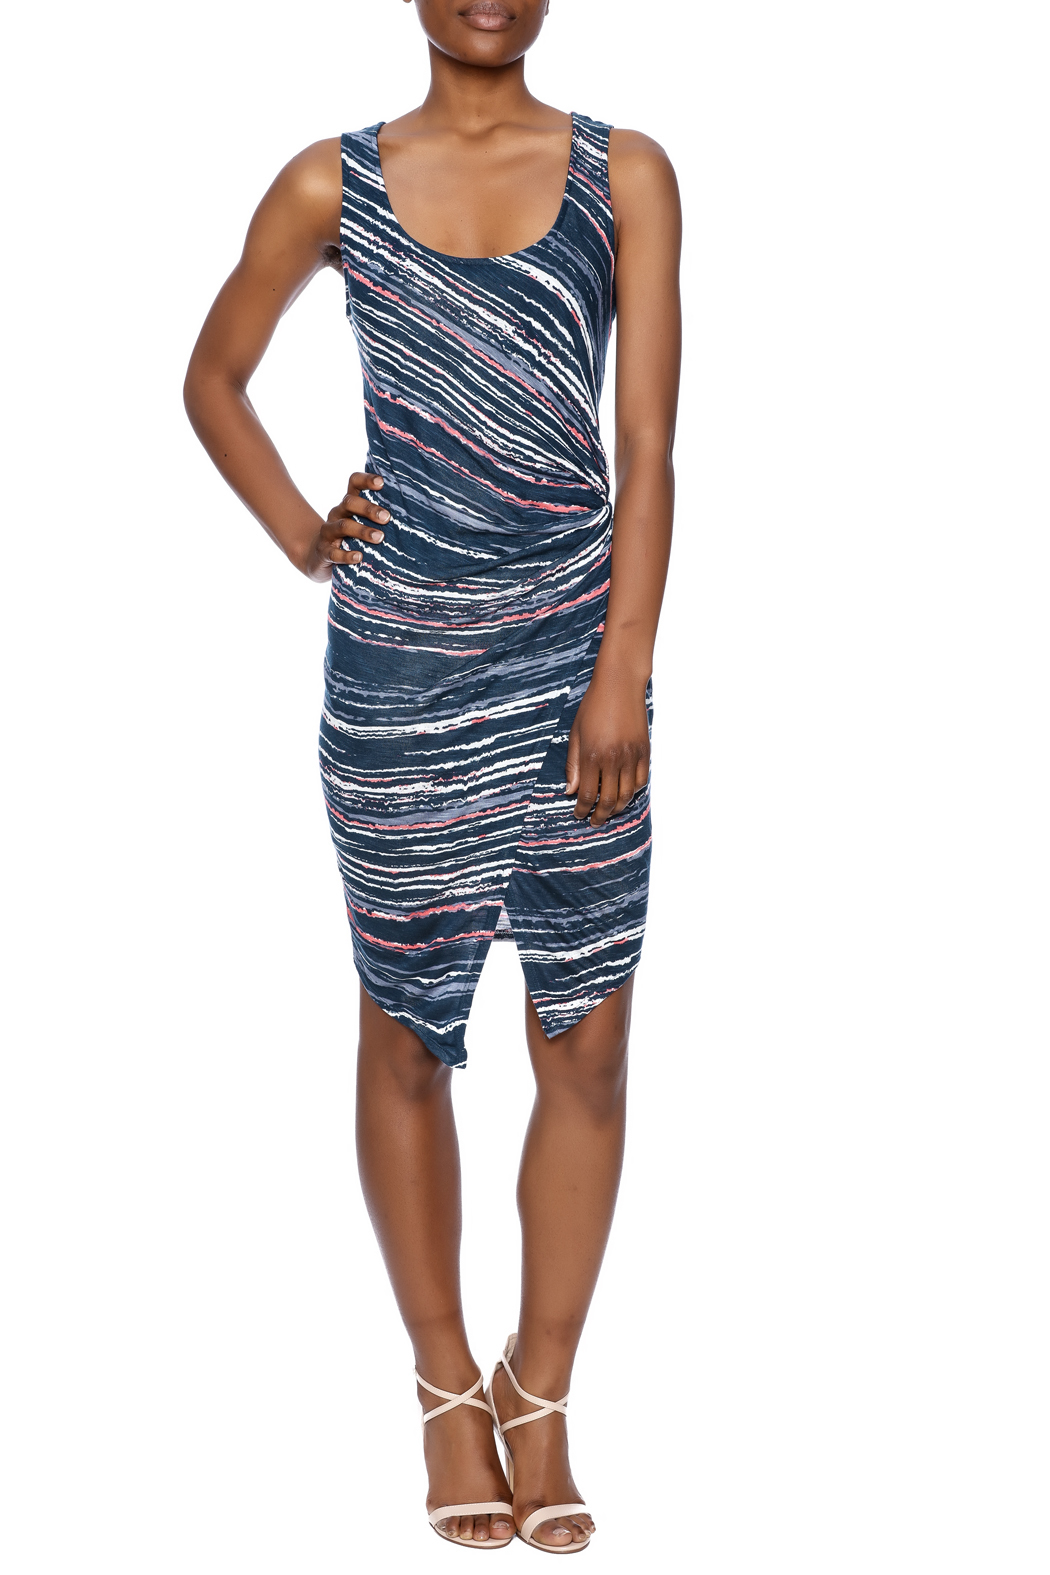 Splendid Knotted Bodycon Dress - Front Full Image